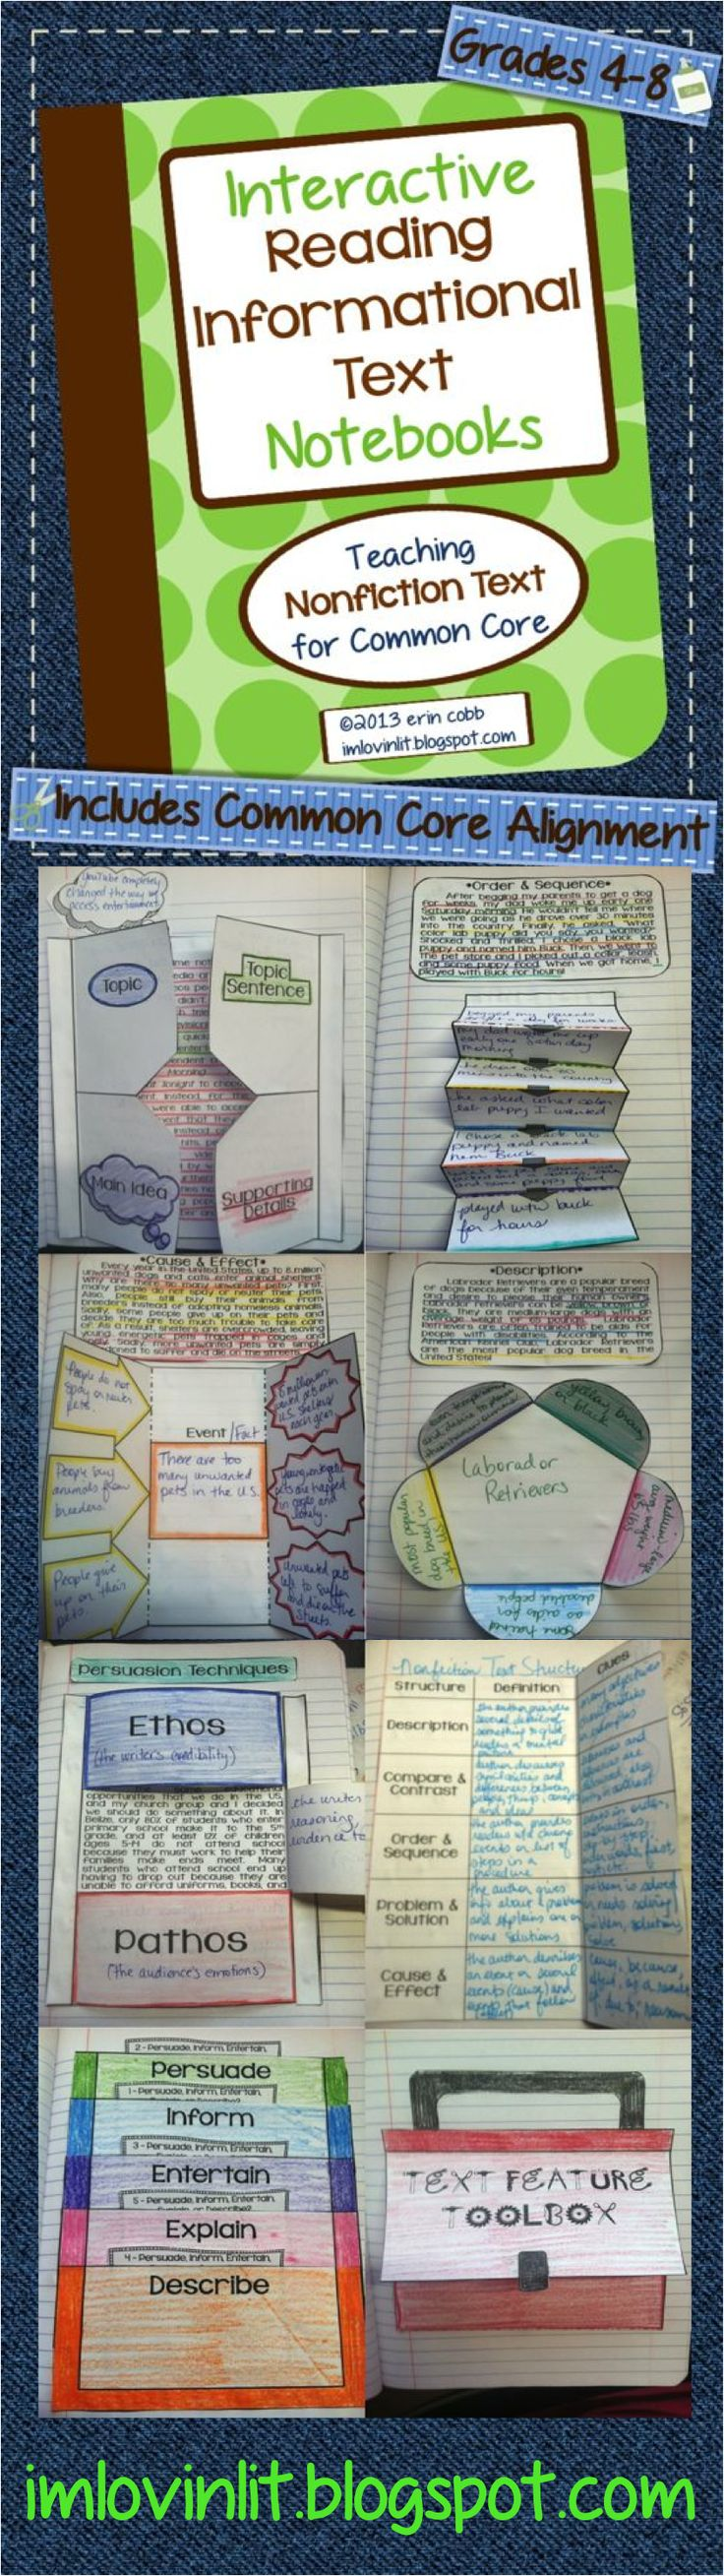 Grades 4-8. Interactive Reading Notebooks: